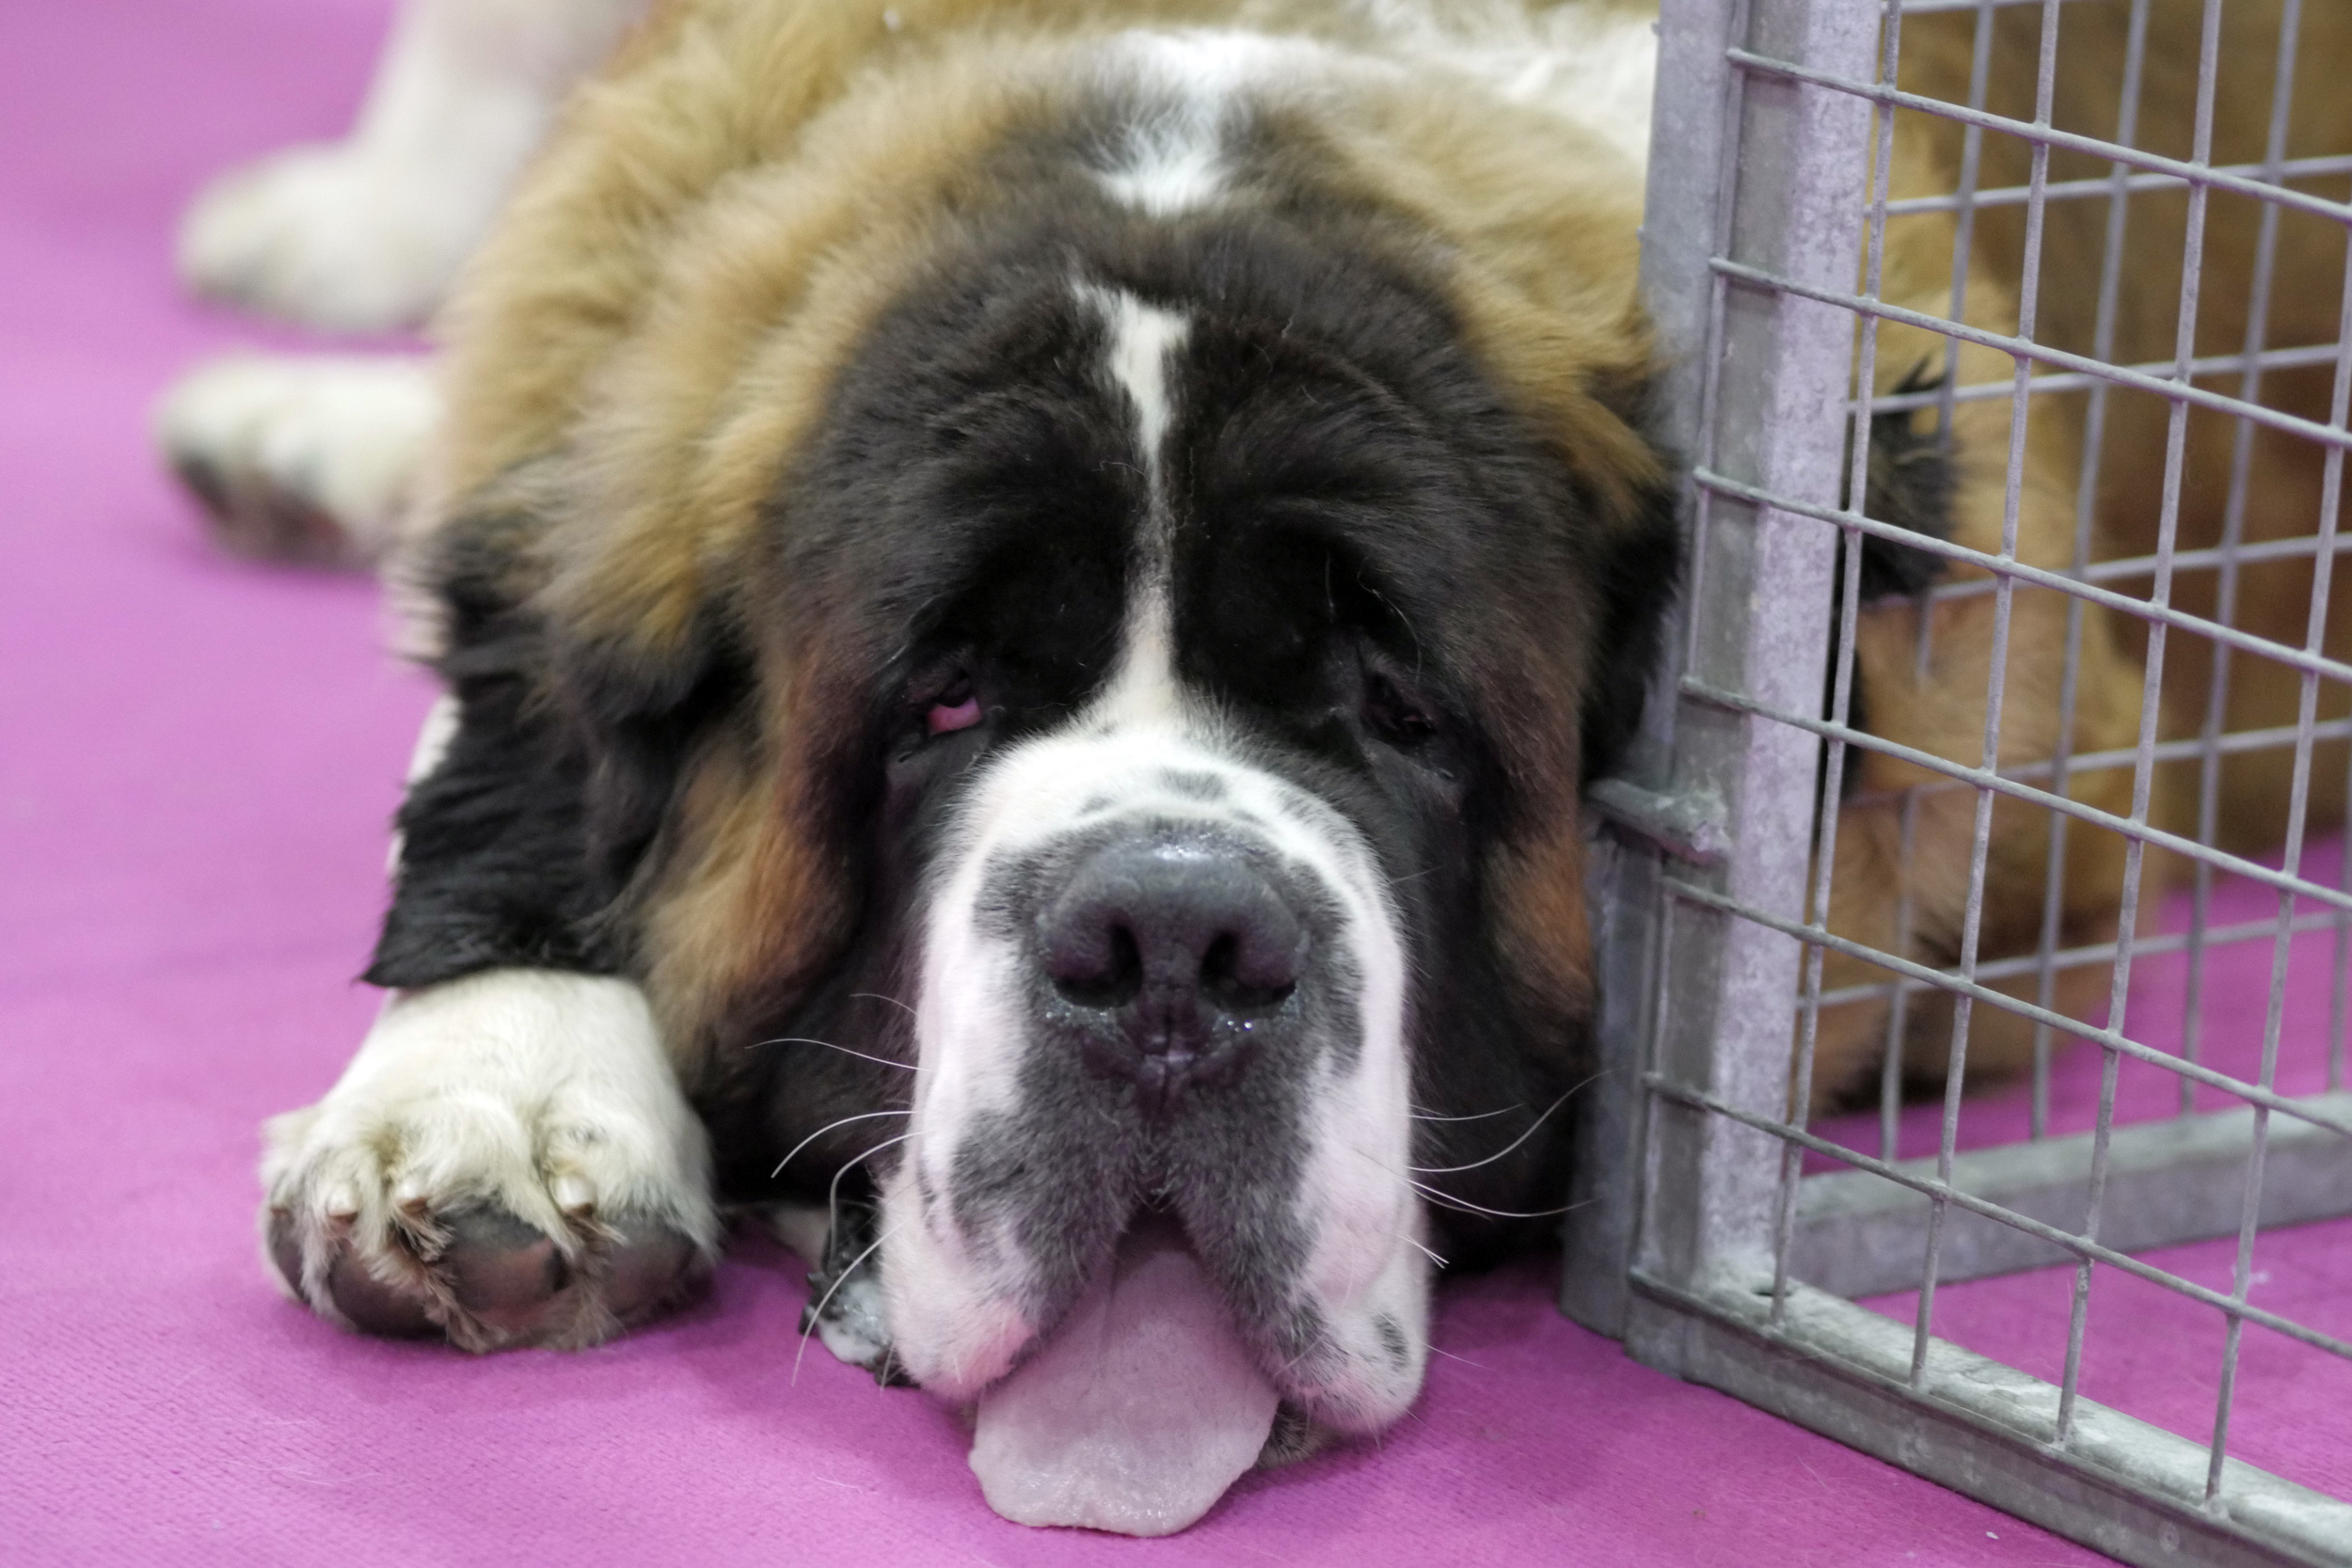 St Bernard exhausted after a long cuddly day